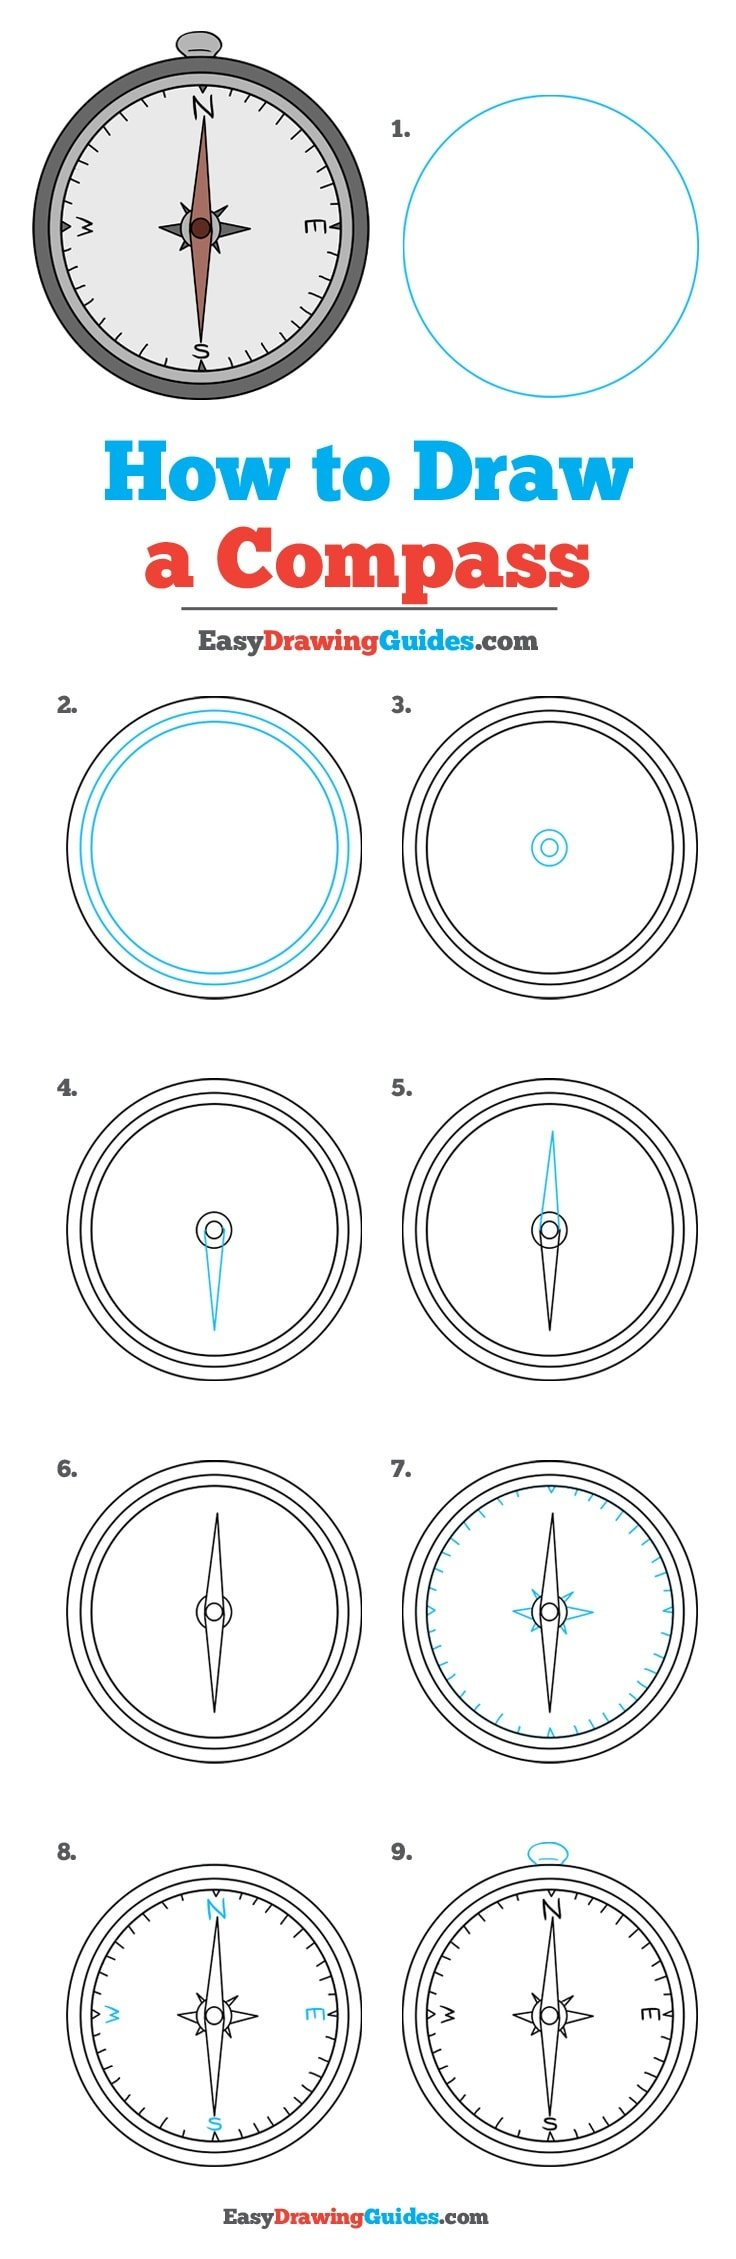 How to Draw Compass